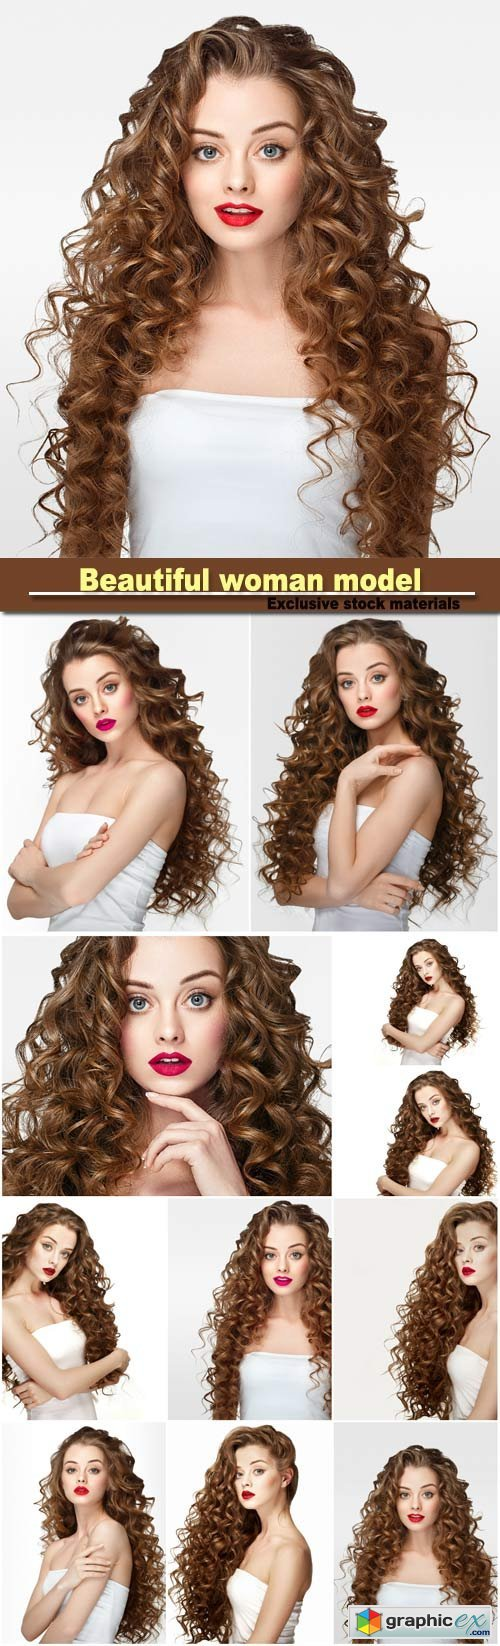 Beautiful woman model with long curly hair